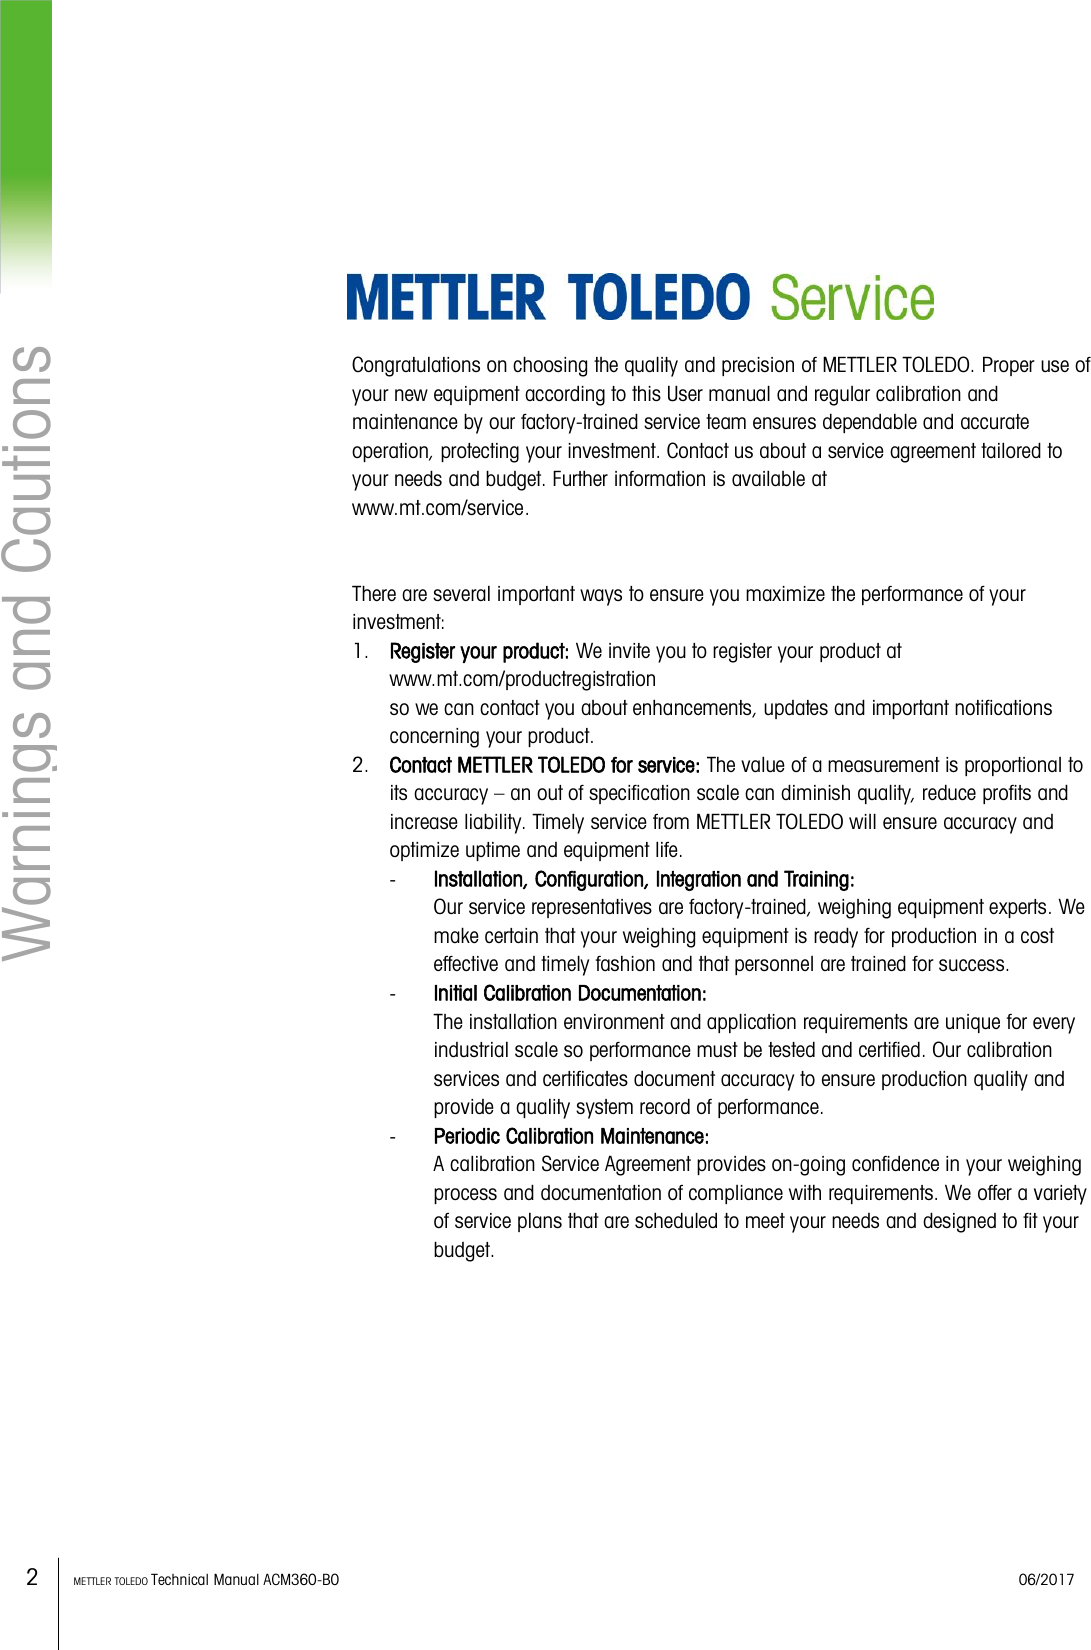 2    METTLER TOLEDO Technical Manual ACM360-B0    06/2017 Warnings and Cautions         Congratulations on choosing the quality and precision of METTLER TOLEDO. Proper use of your new equipment according to this User manual and regular calibration and maintenance by our factory-trained service team ensures dependable and accurate operation, protecting your investment. Contact us about a service agreement tailored to your needs and budget. Further information is available at www.mt.com/service.   There are several important ways to ensure you maximize the performance of your investment: 1. Register your product: We invite you to register your product at www.mt.com/productregistration   so we can contact you about enhancements, updates and important notifications concerning your product. 2. Contact METTLER TOLEDO for service: The value of a measurement is proportional to its accuracy – an out of specification scale can diminish quality, reduce profits and increase liability. Timely service from METTLER TOLEDO will ensure accuracy and optimize uptime and equipment life. - Installation, Configuration, Integration and Training: Our service representatives are factory-trained, weighing equipment experts. We make certain that your weighing equipment is ready for production in a cost effective and timely fashion and that personnel are trained for success. - Initial Calibration Documentation: The installation environment and application requirements are unique for every industrial scale so performance must be tested and certified. Our calibration services and certificates document accuracy to ensure production quality and provide a quality system record of performance. - Periodic Calibration Maintenance: A calibration Service Agreement provides on-going confidence in your weighing process and documentation of compliance with requirements. We offer a variety of service plans that are scheduled to meet your needs and designed to fit your budget.